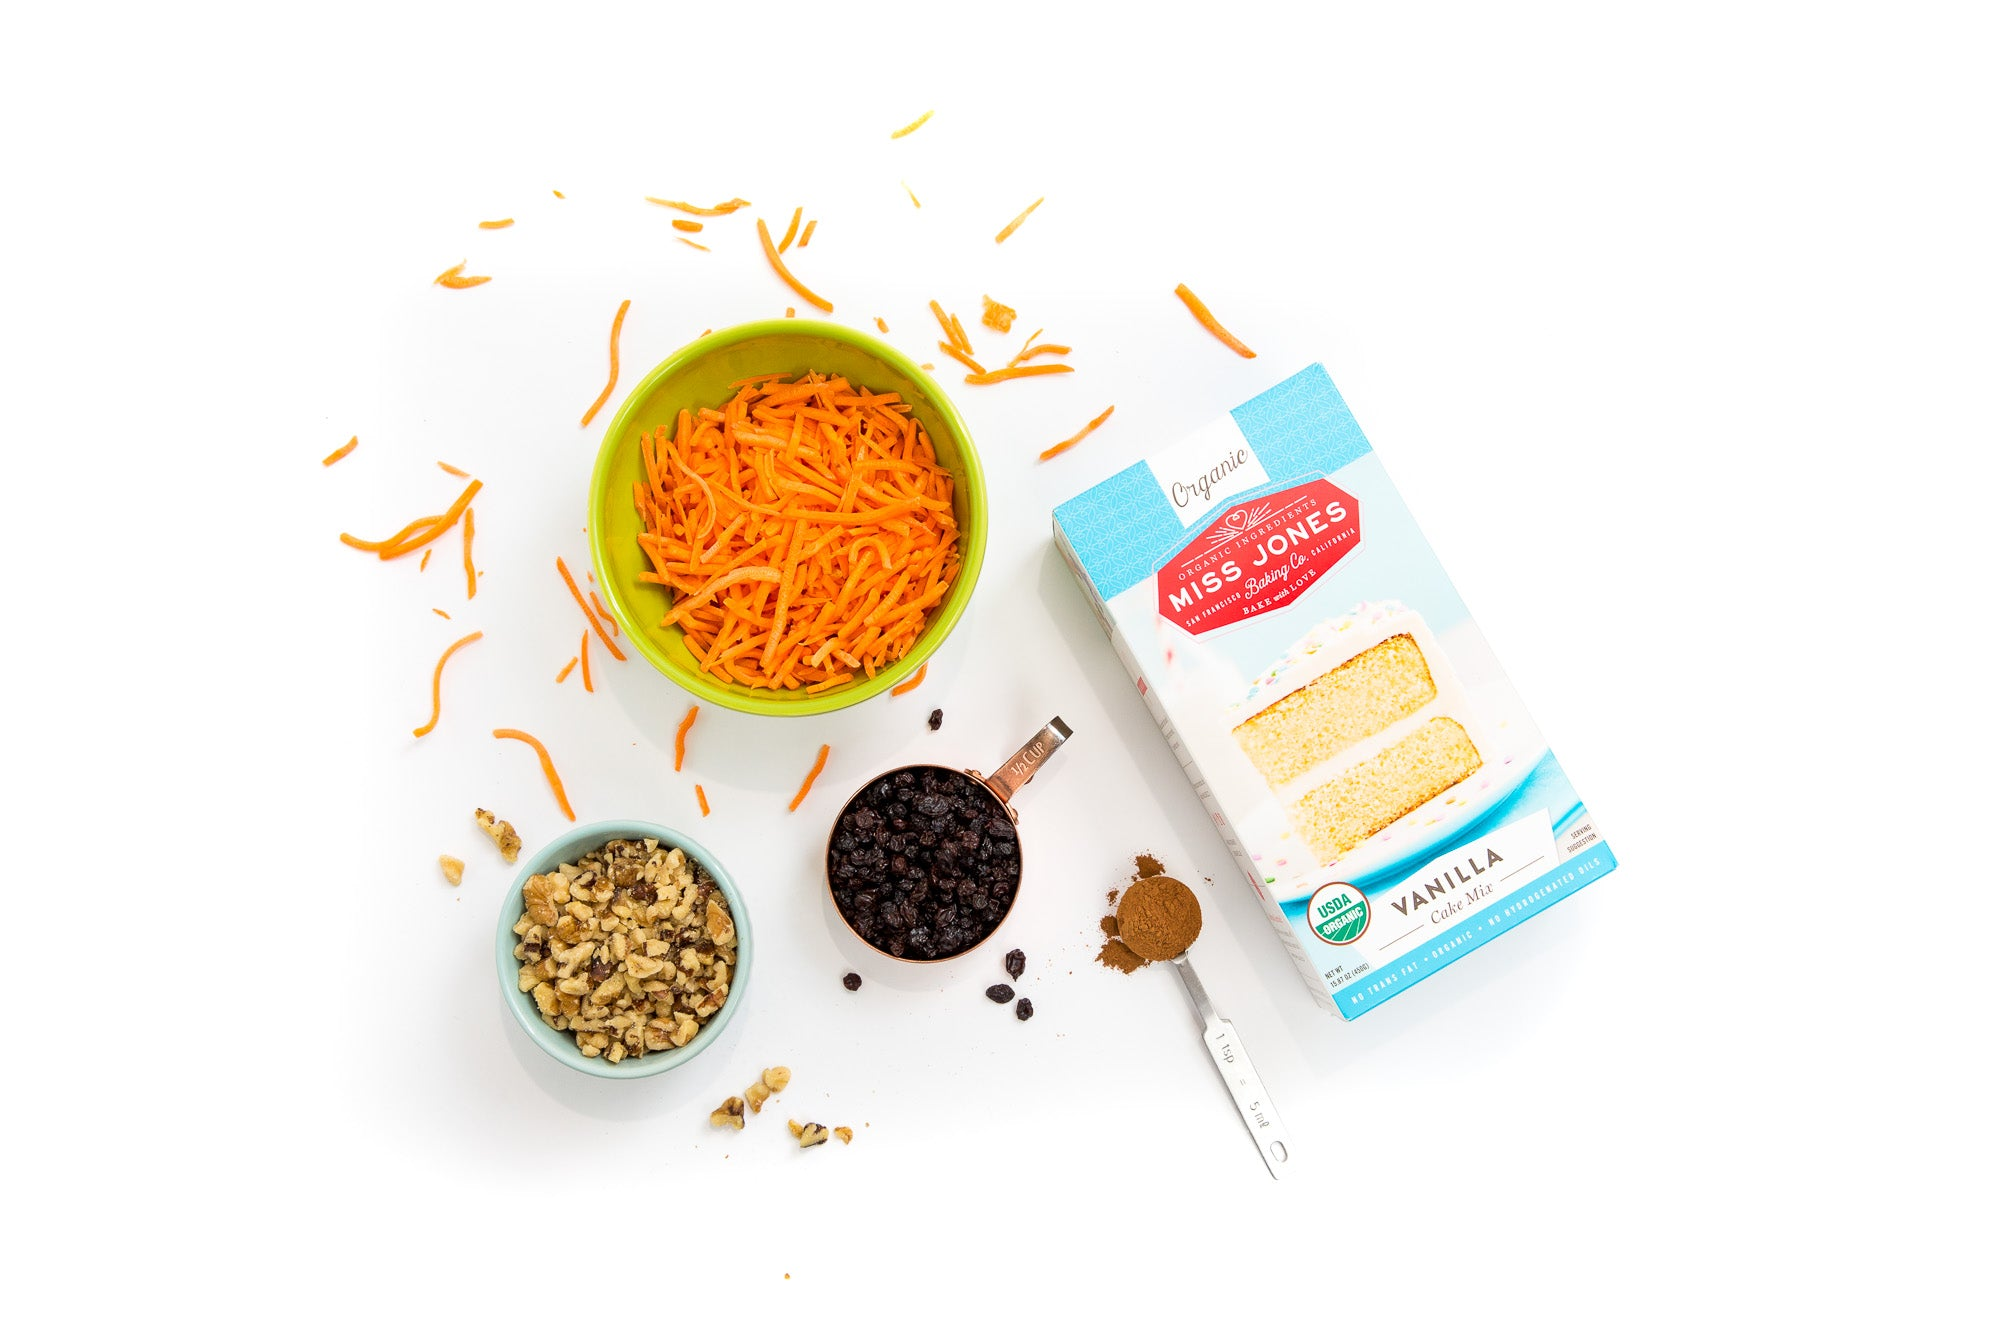 Image of ingredients used for Miss Jones Baking Co Carrot Cake Bark with a box of Miss Jones Vanilla Cake Mix